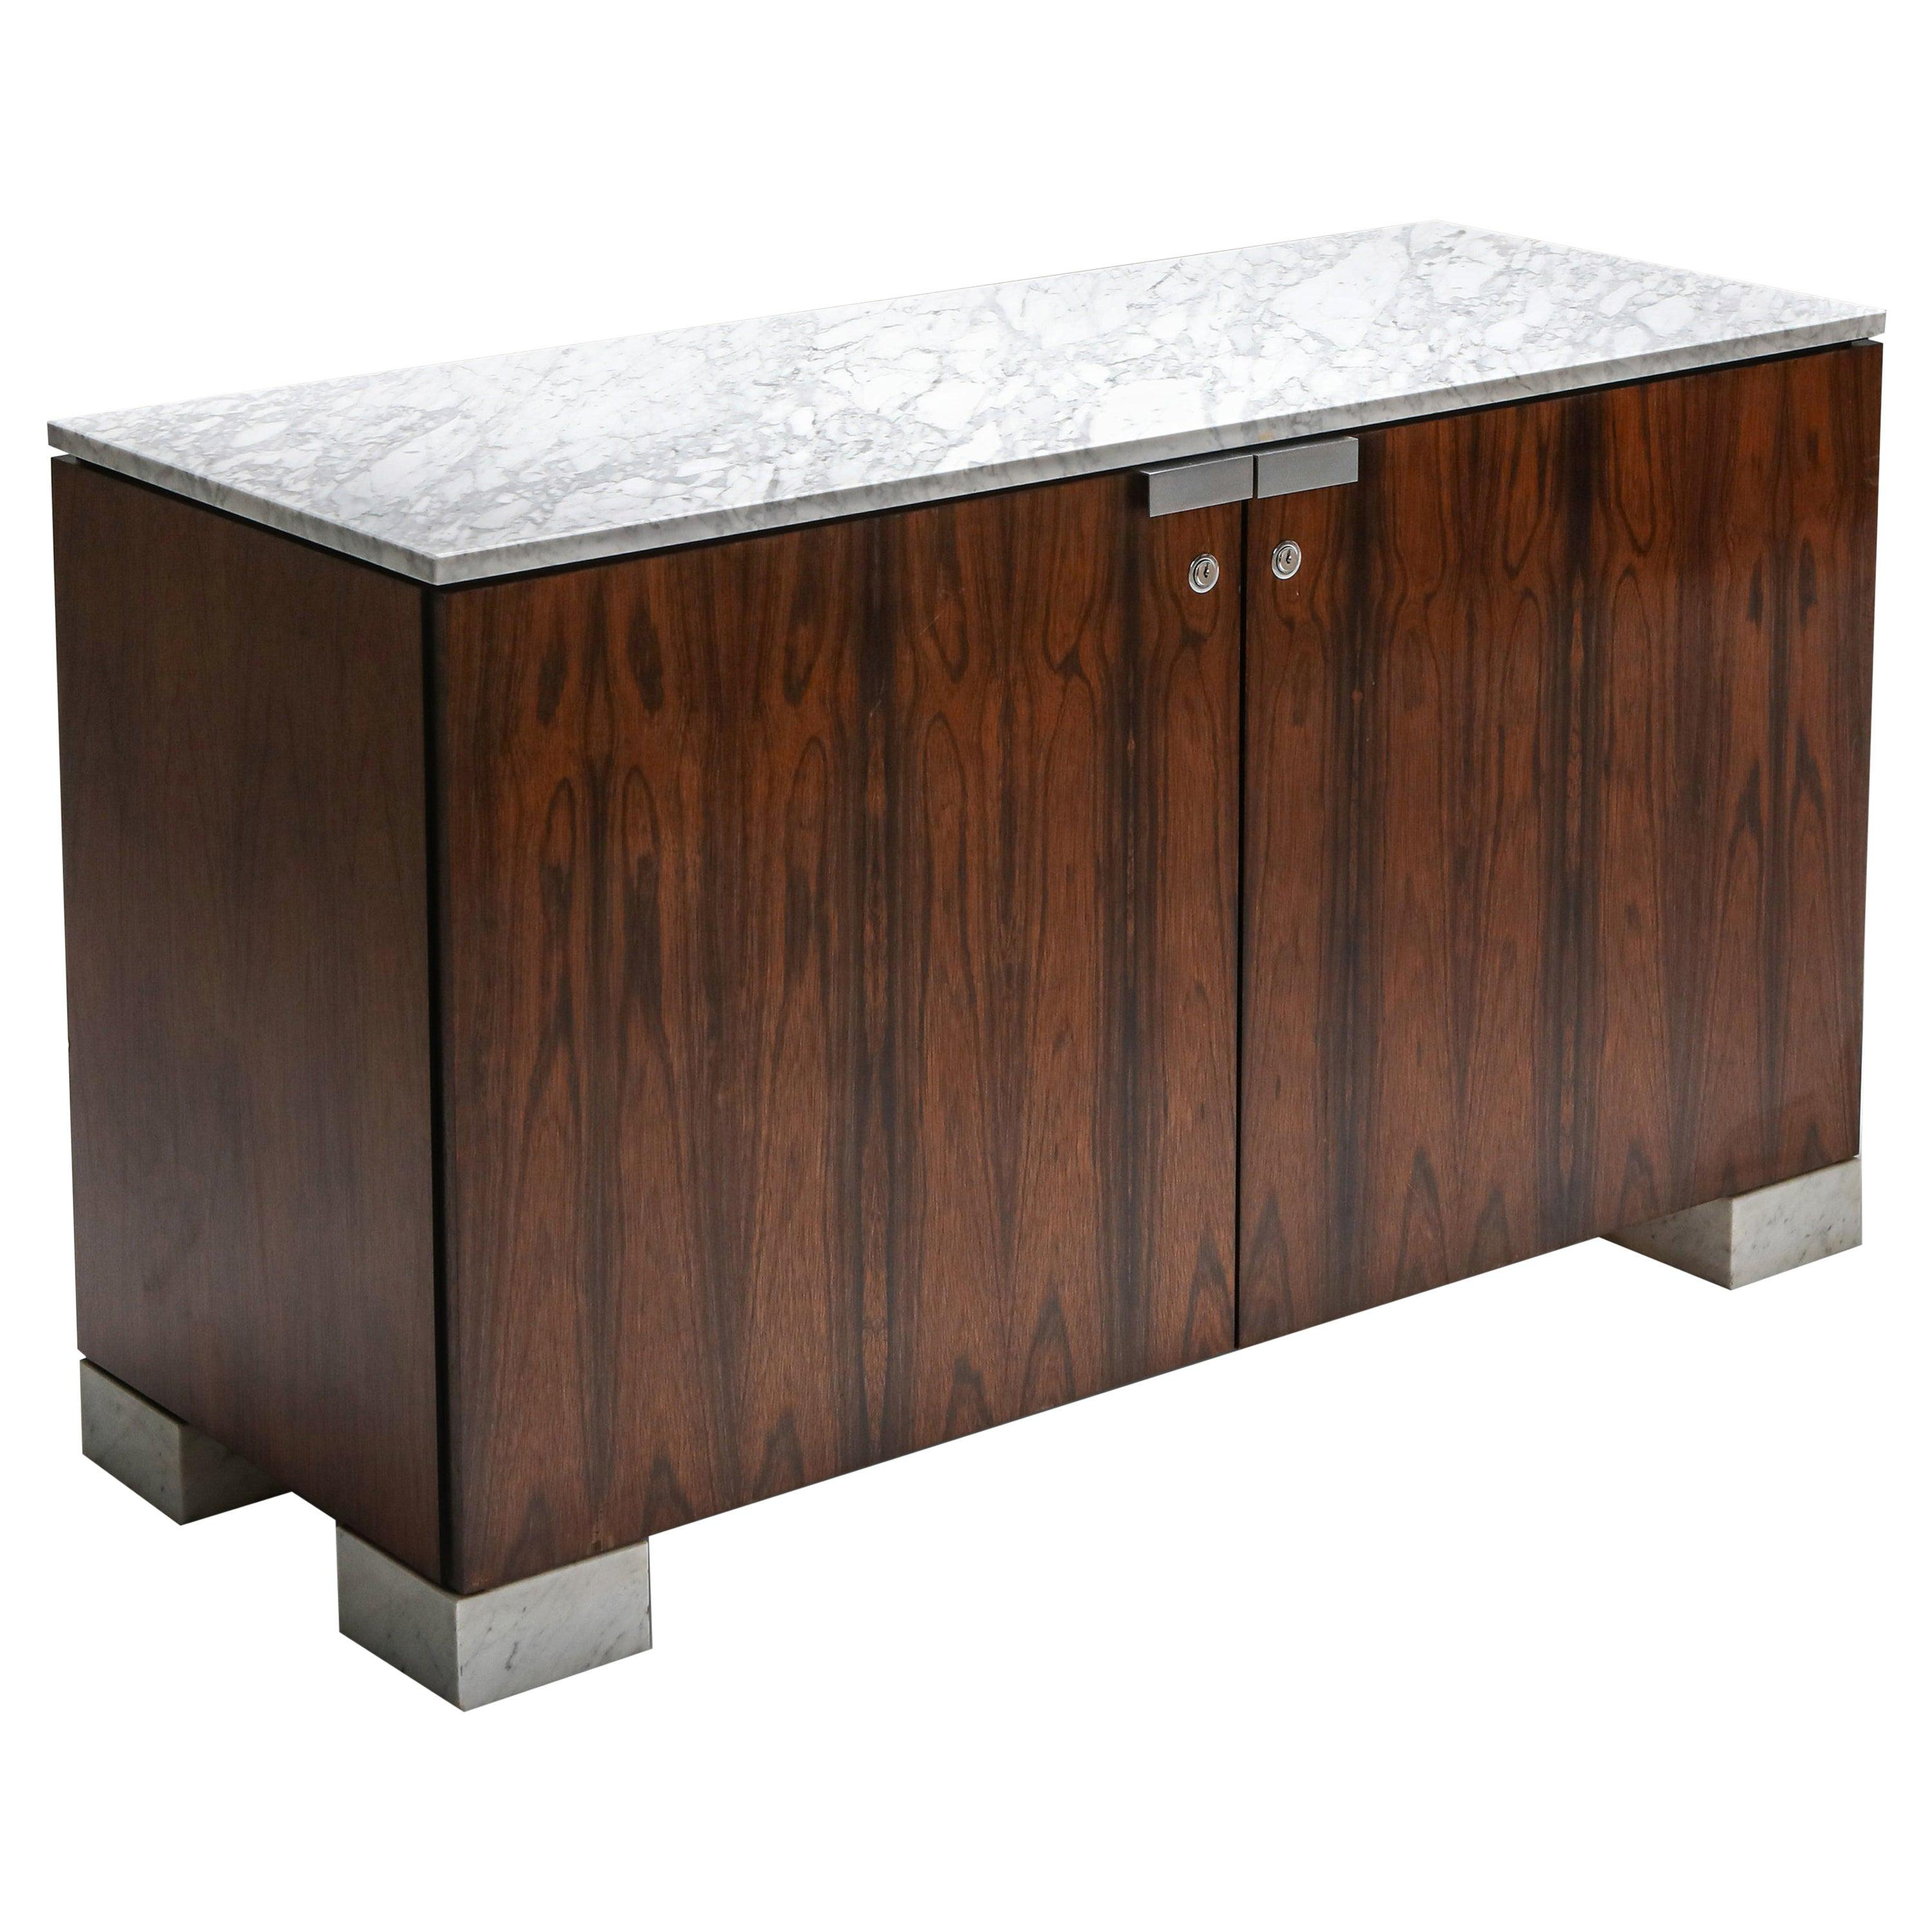 Carrara Marble and Rosewood Cabinet by Alfred Hendrickx